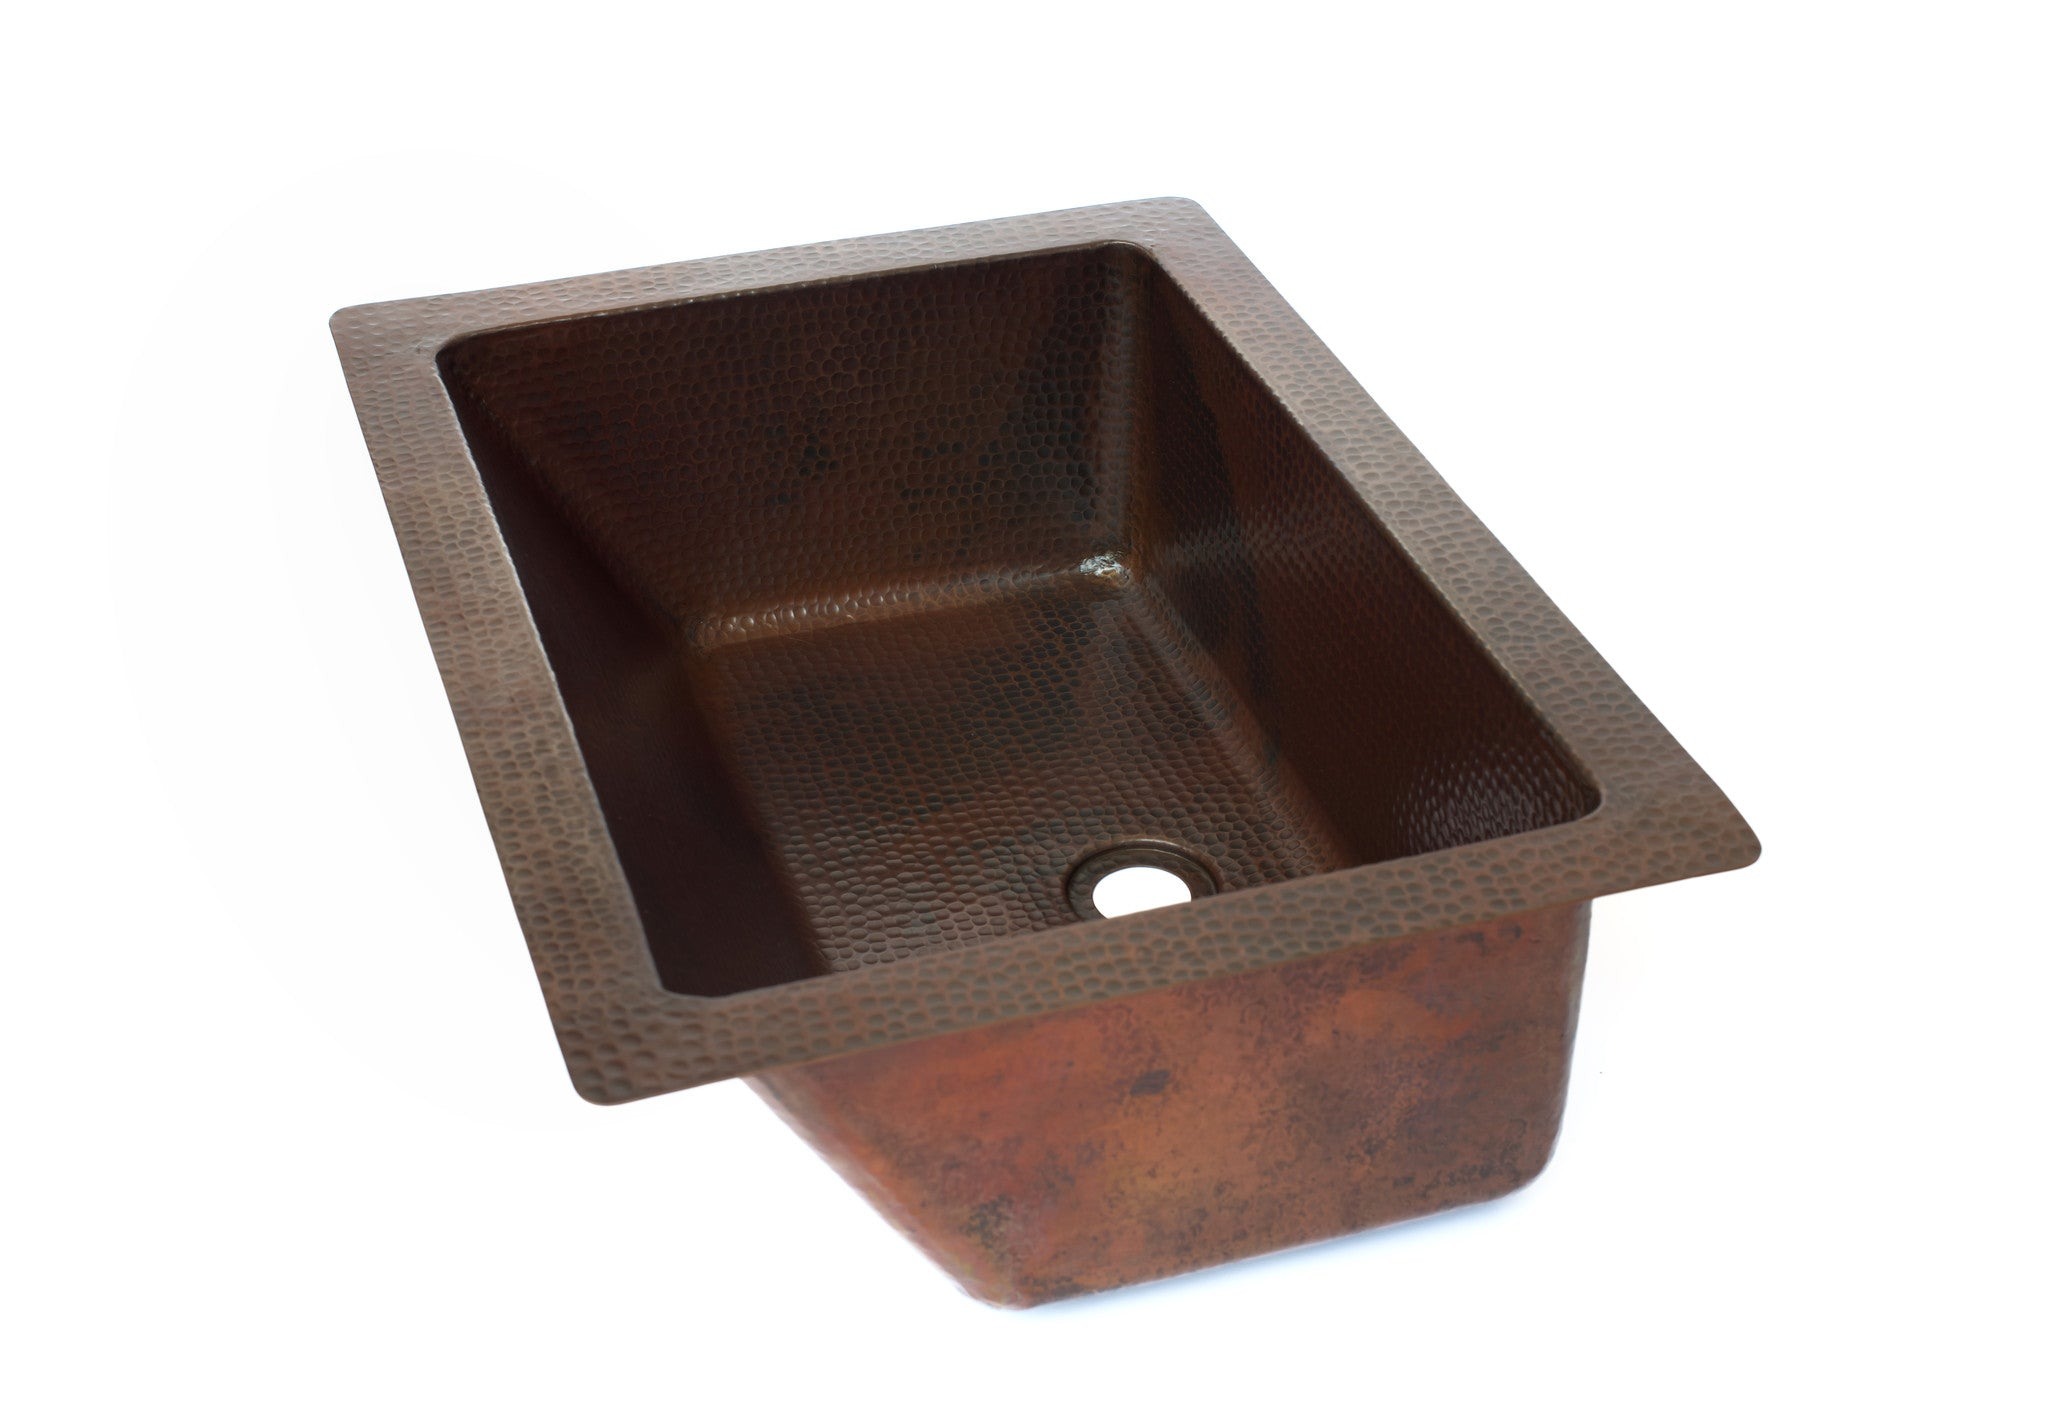 Rectangular Under Mount Bathroom Copper Sink with angled wall - 20 x 15 x  7